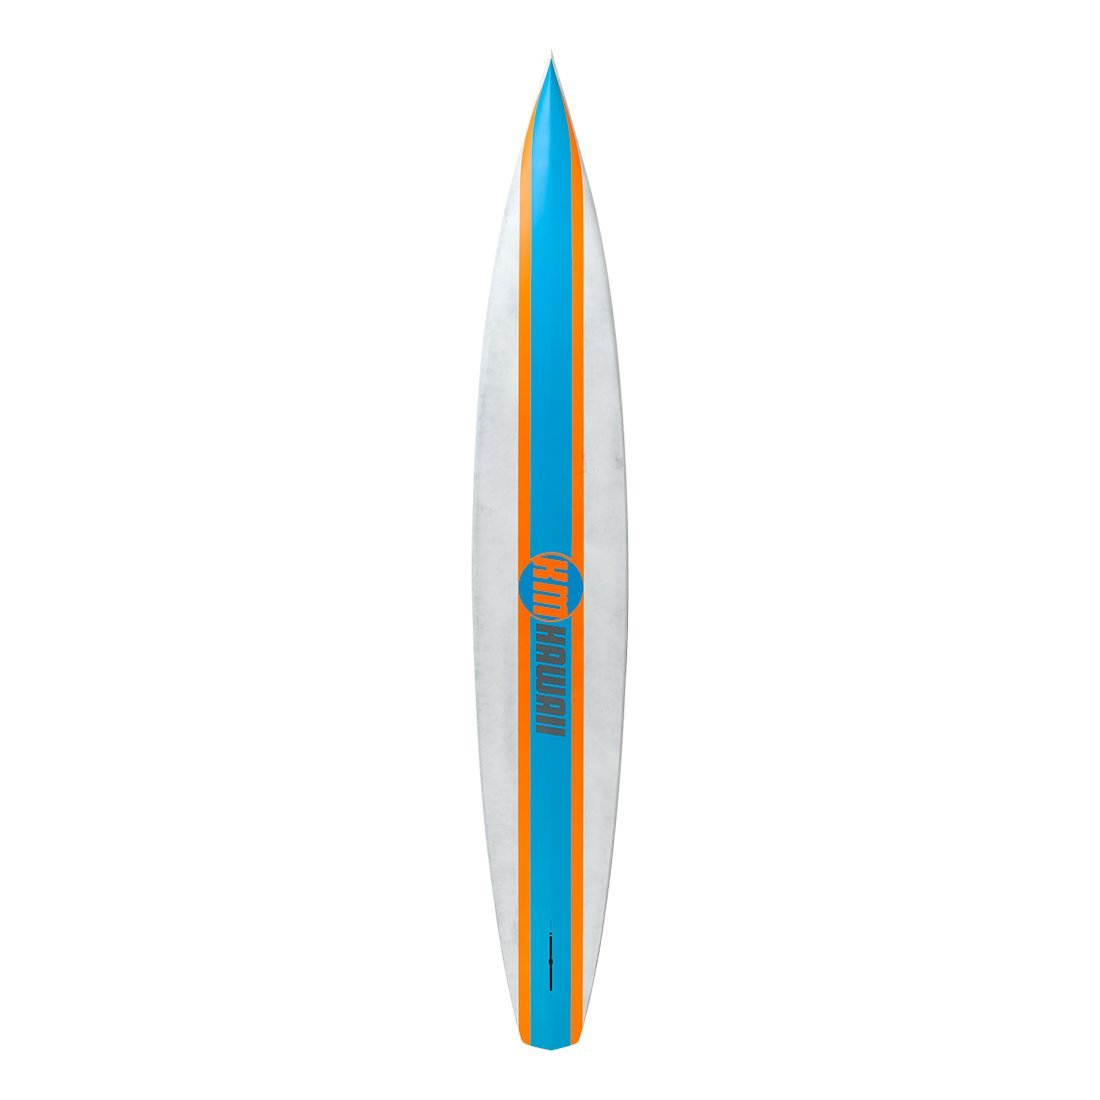 "KM Hawaii CompressorHP - BO - 14'0"" x 24"" Carbon Fiber Performance Standup Paddle Board Paddle Boards 4theoutdoors America US USA SUP outdoors"